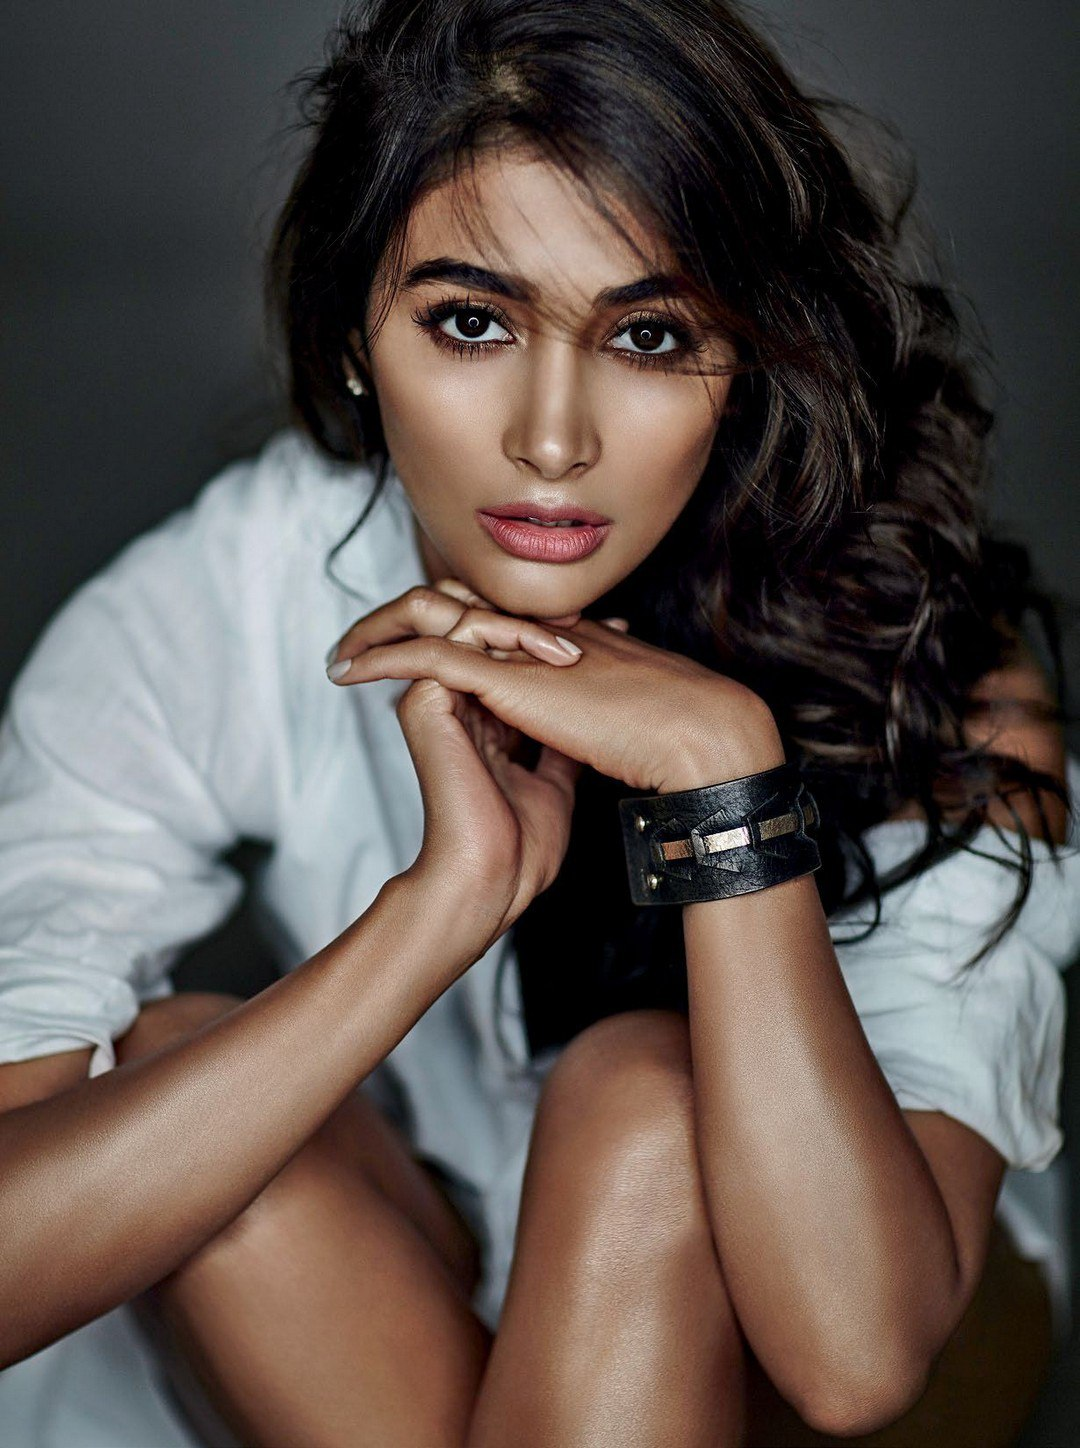 actress, bollywood, brunette, india, model